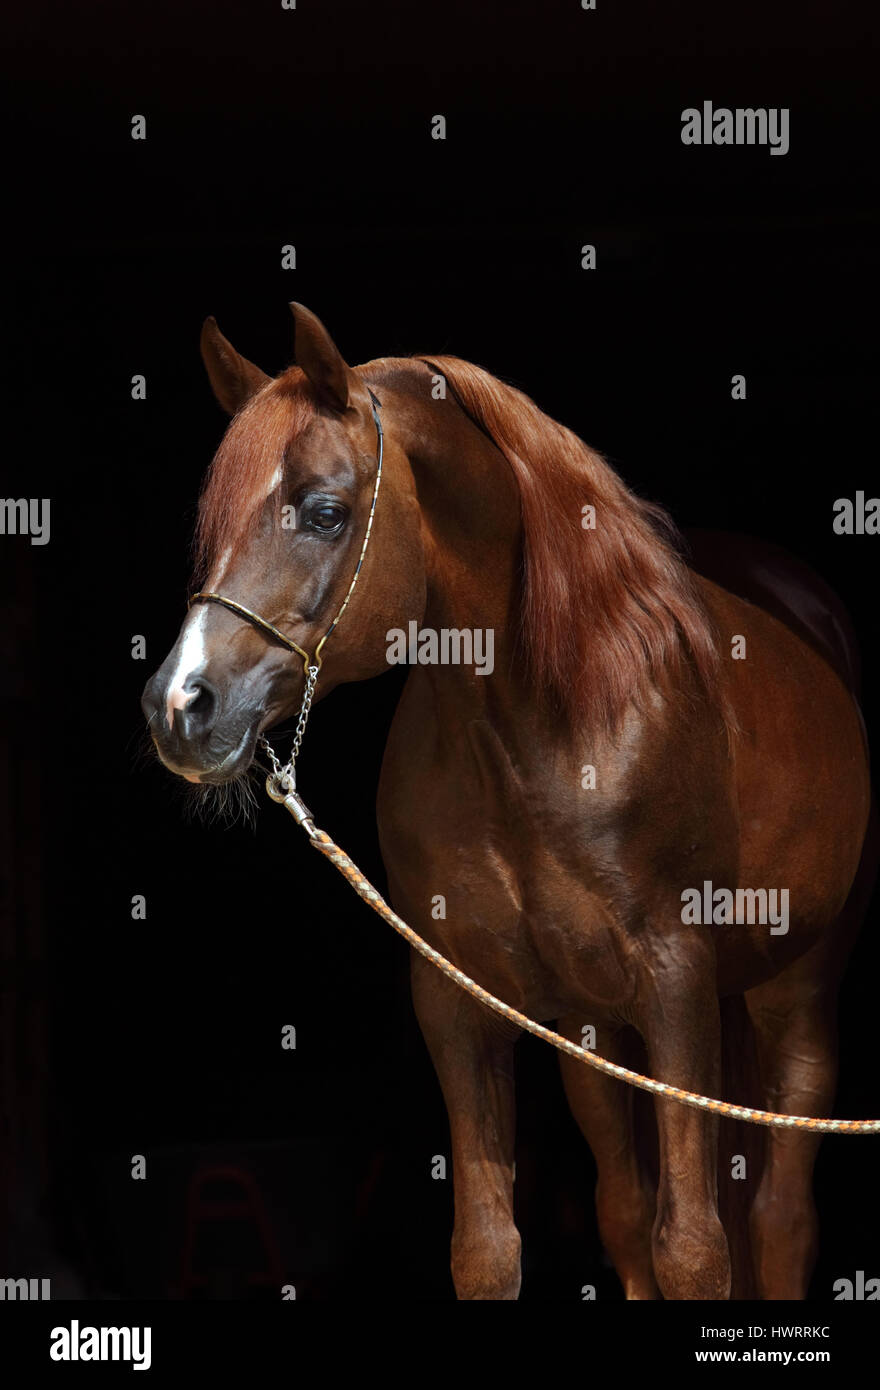 Head shot of a bay arabian horse against a dark stable background - Stock Image